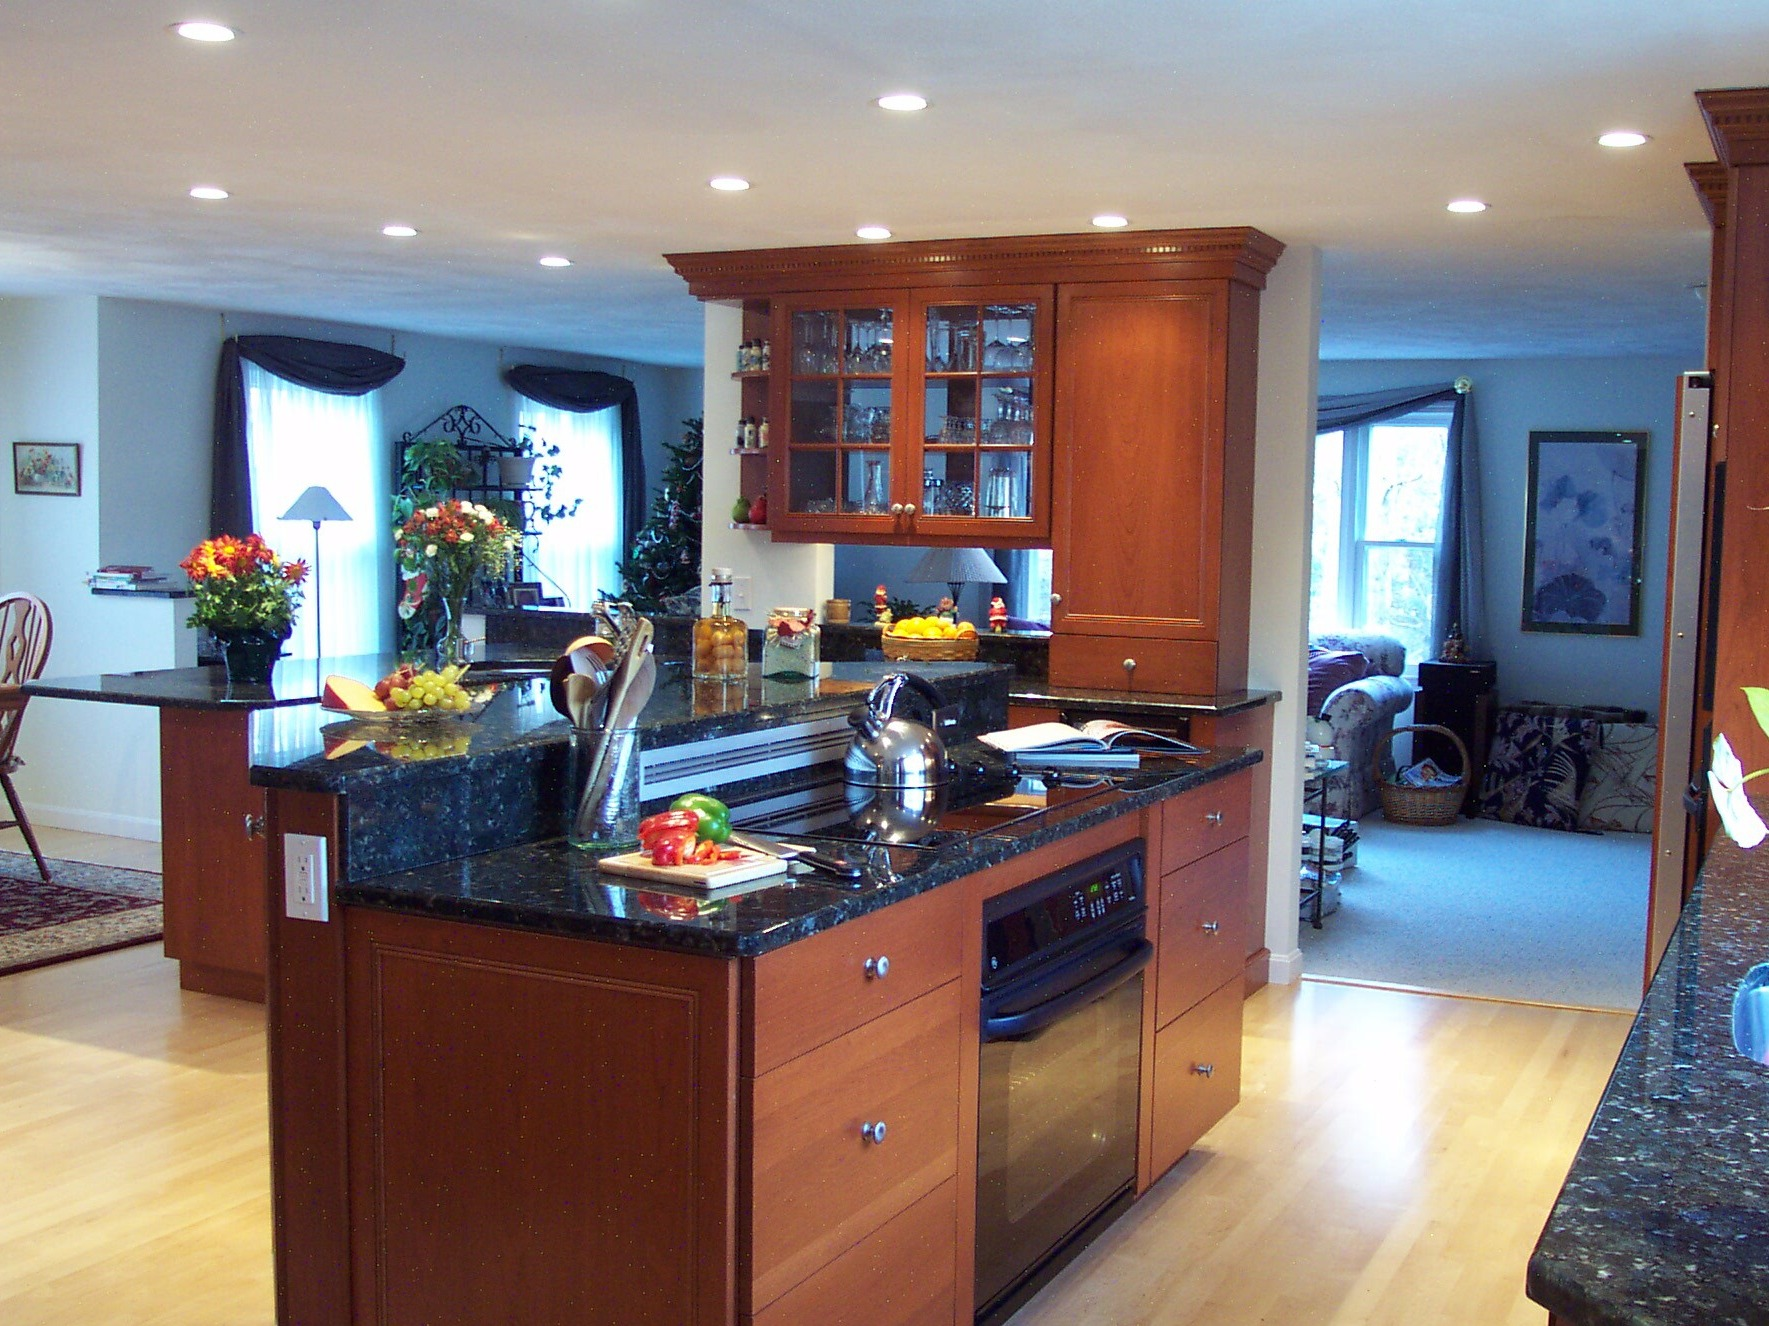 Cabinet america utica ny kitchen remodel custom for Adelphi kitchen cabinets